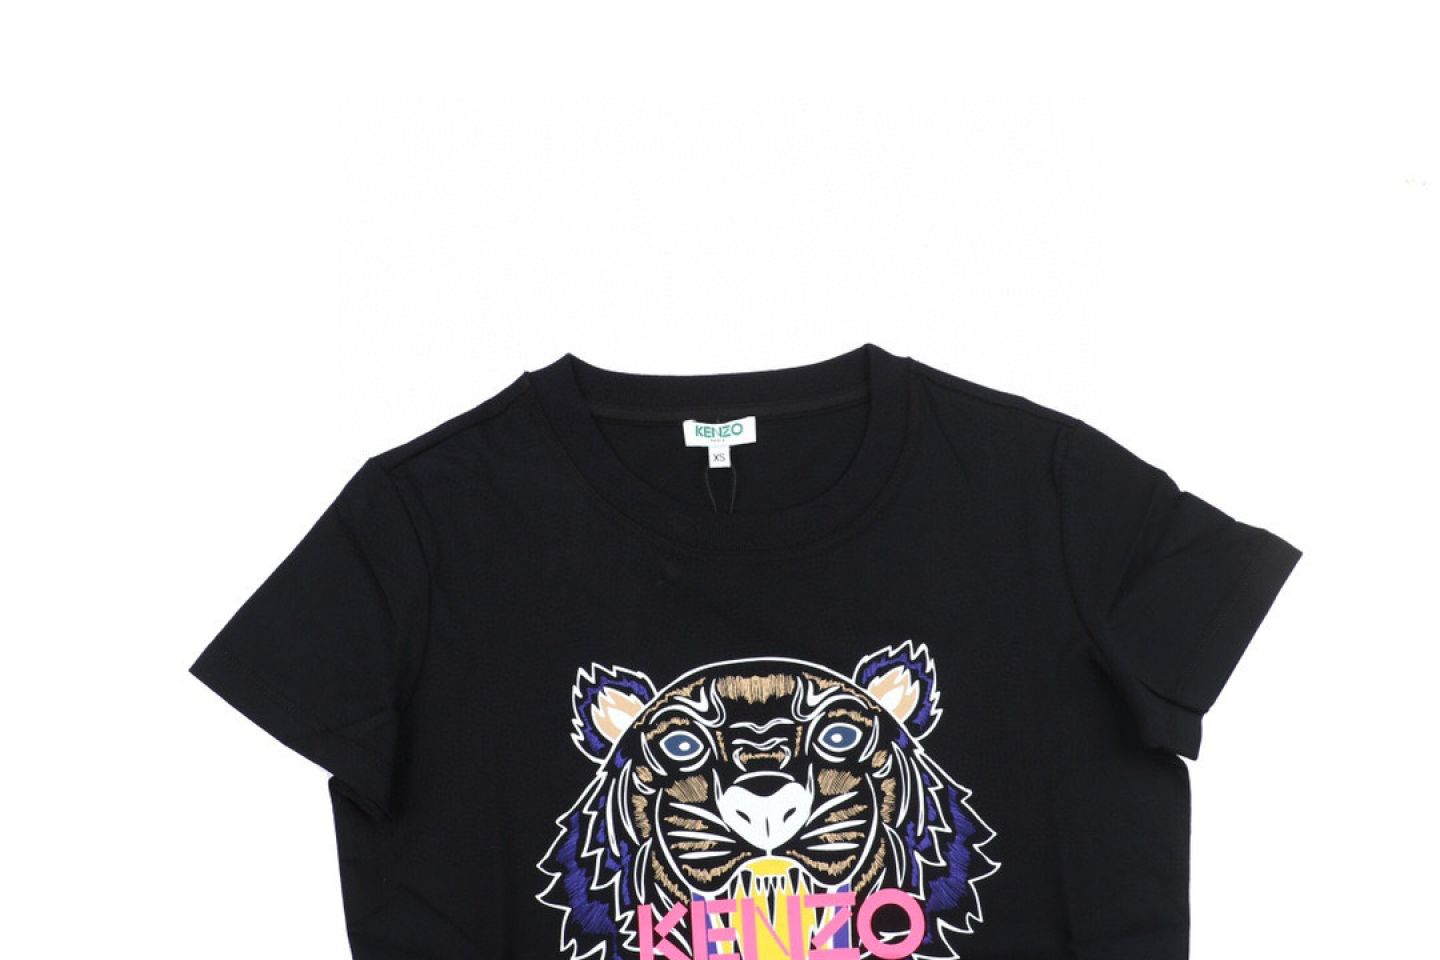 Shirt 2020 kenzo T-shirt Black Pink Purple 4 2020_kenzo_t_shirt_black_pink_purple_4